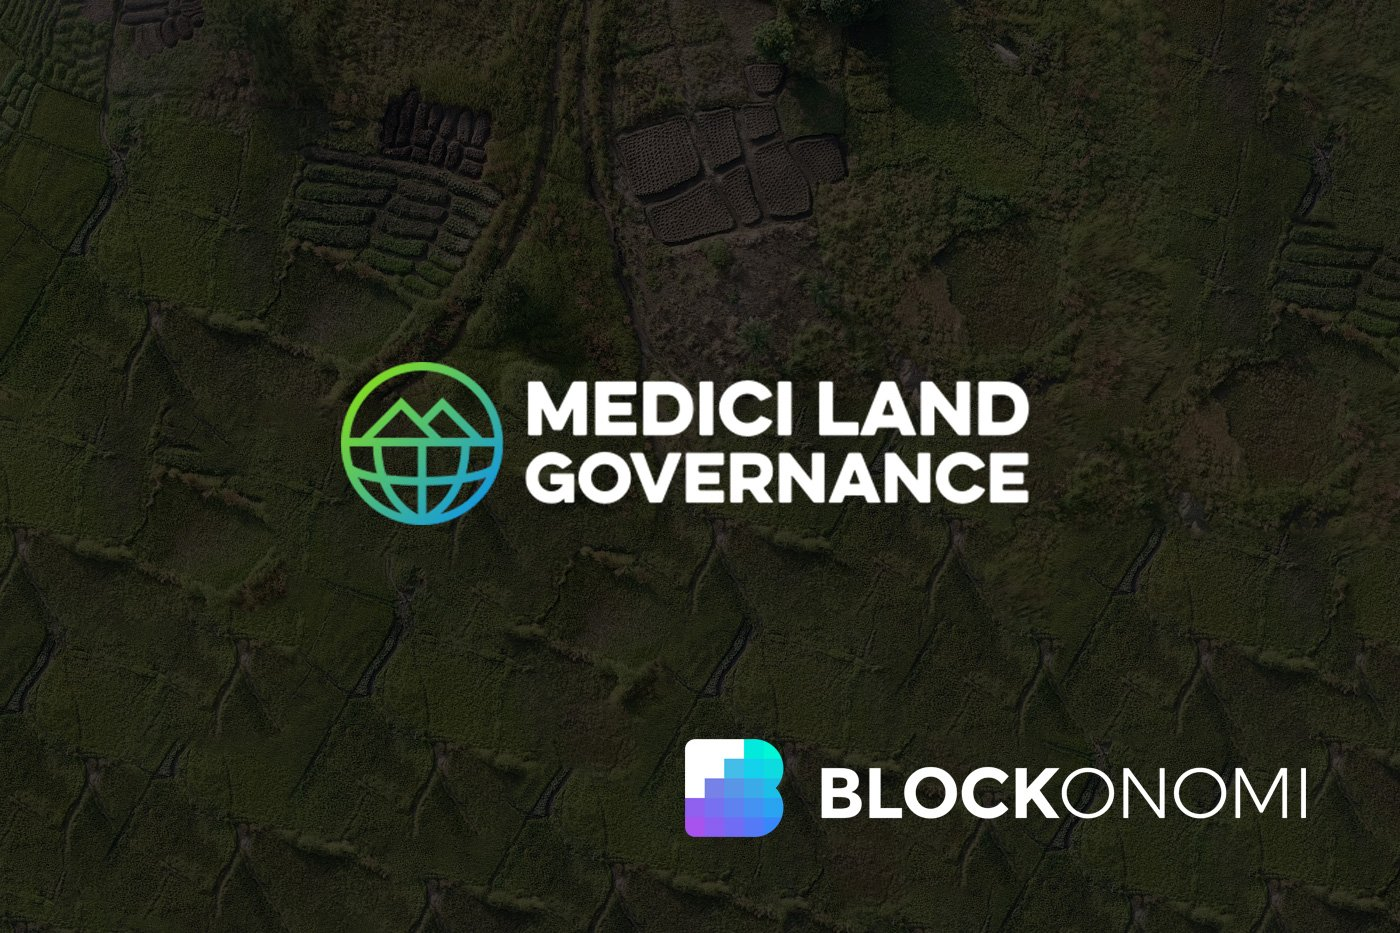 Medici Land Governance